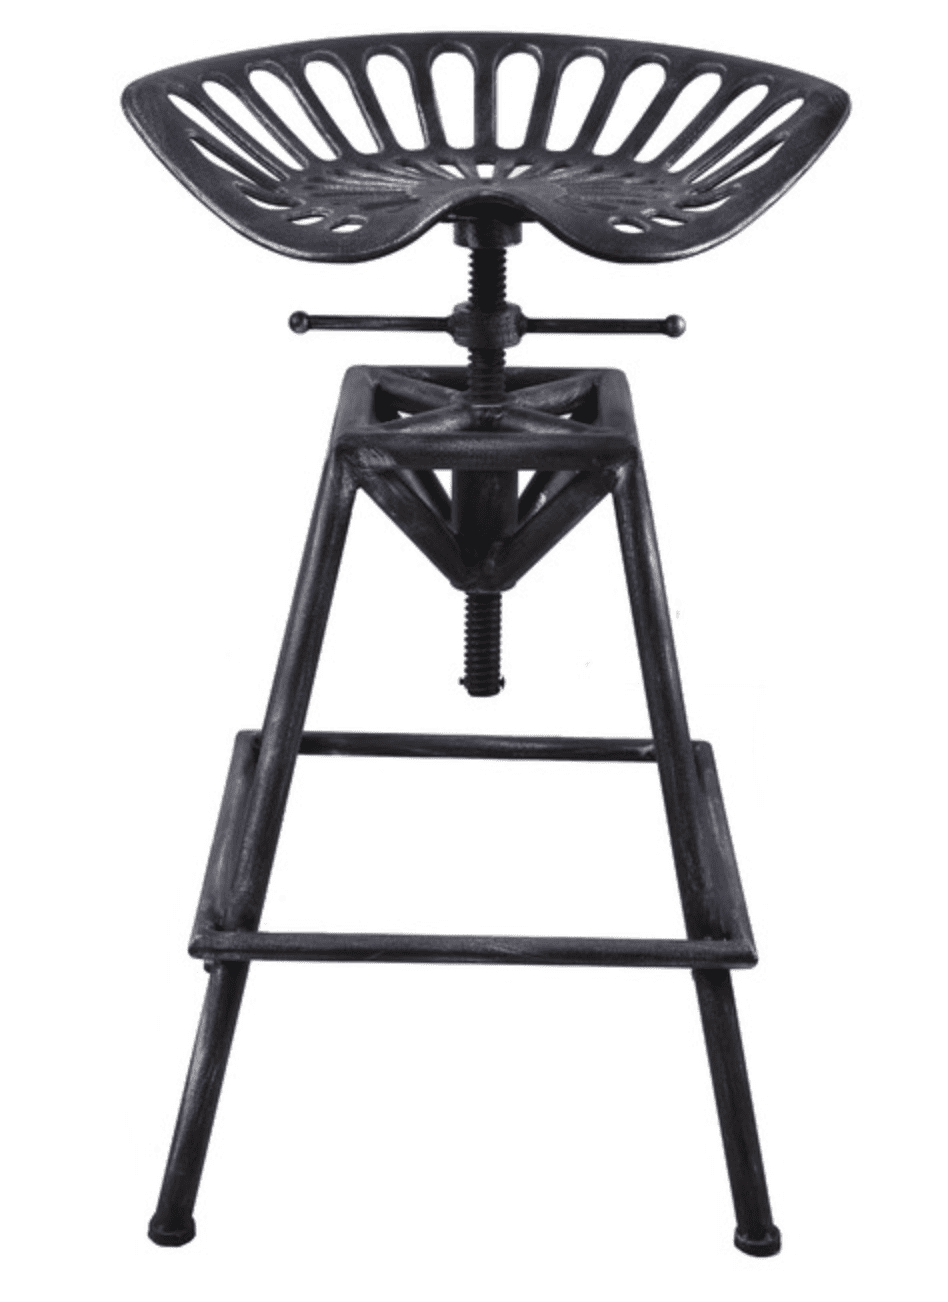 Industrial Cast Iron and Steel Bar Stool by Brikk